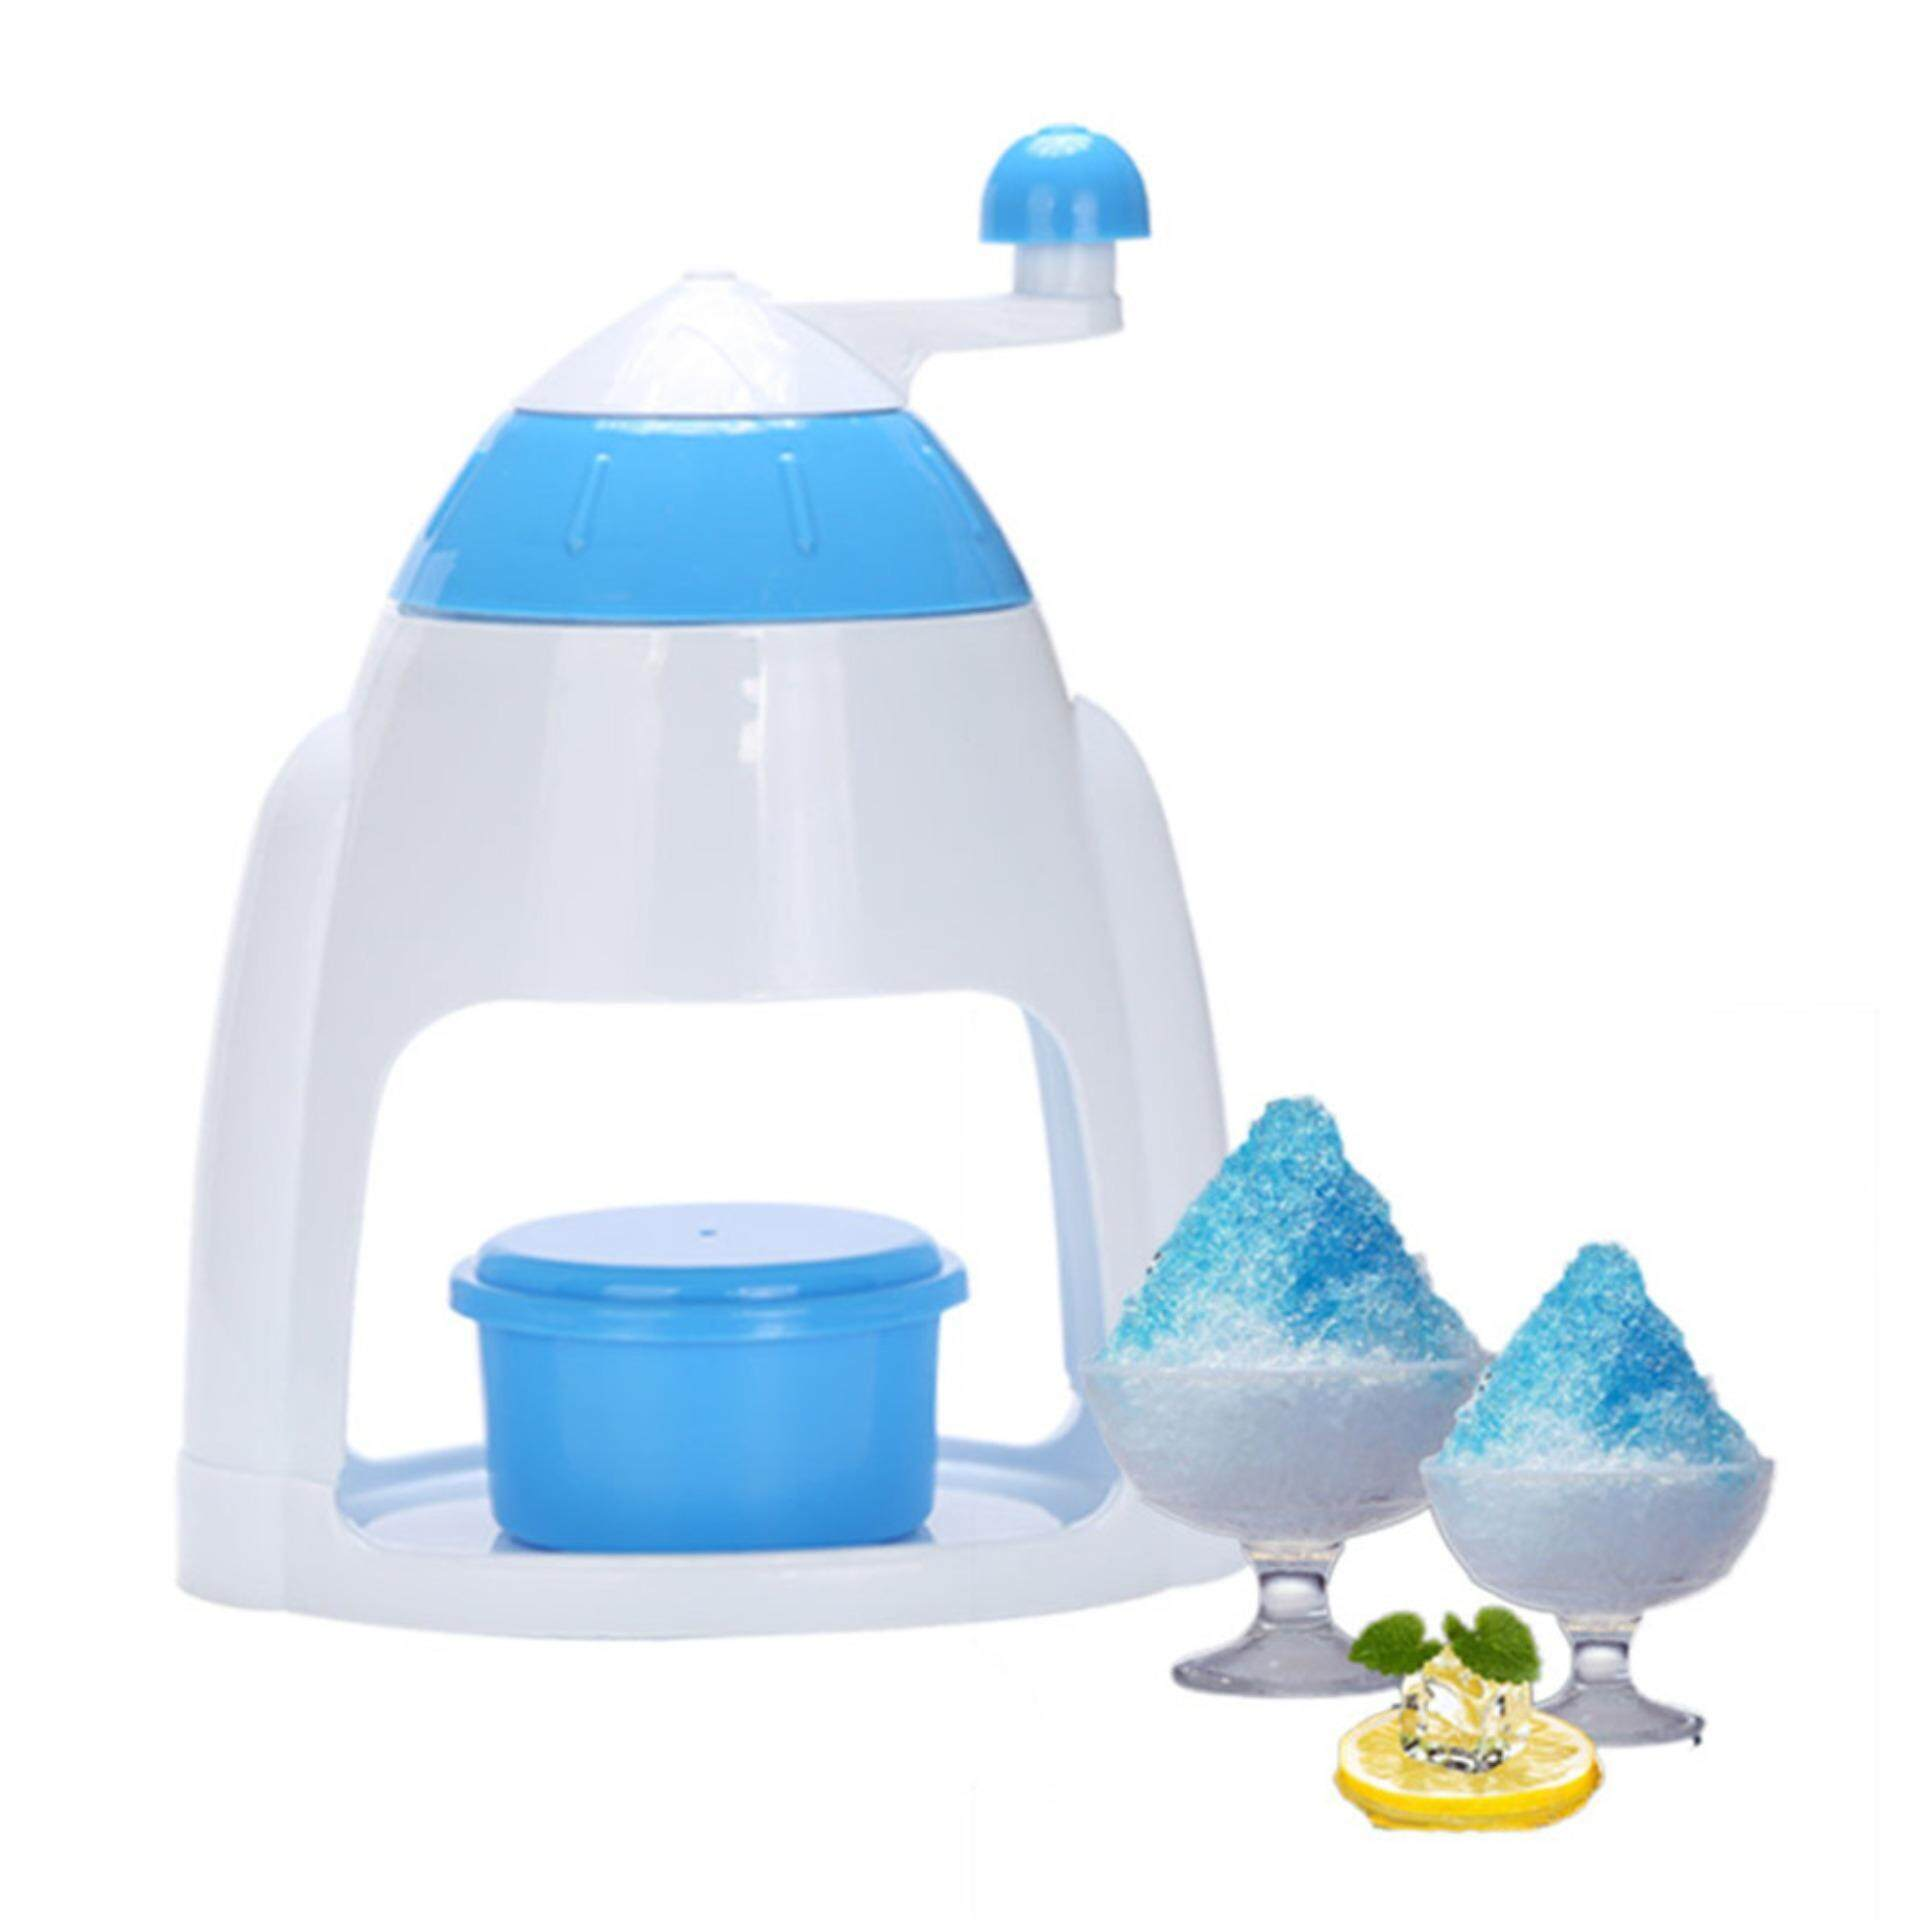 Ice Crushers Shavers Portable Blue Handheld Manual Household Snow Cone Smasher Grinder Machine As Plastic Handstyle - Intl By Cessna.